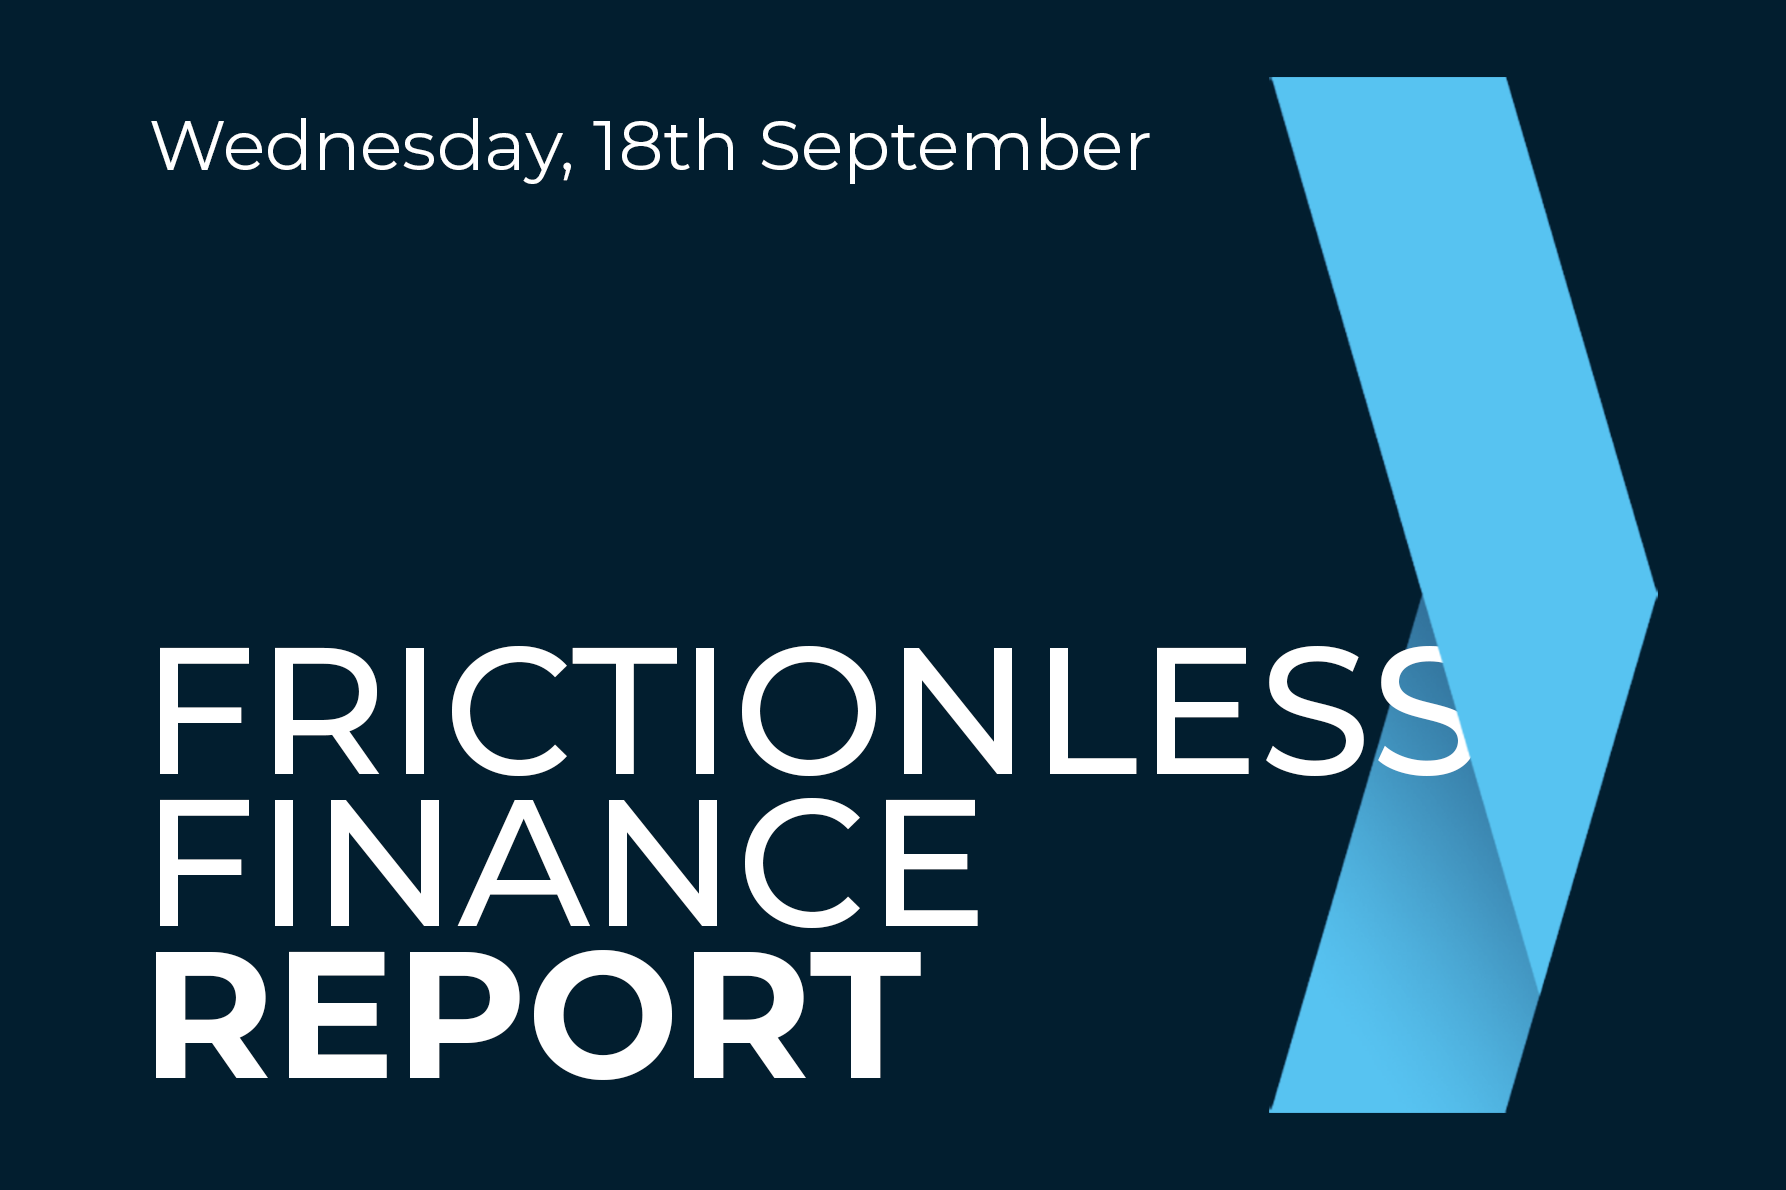 Frictionless Finance Report - Wednesday 18th September 2019